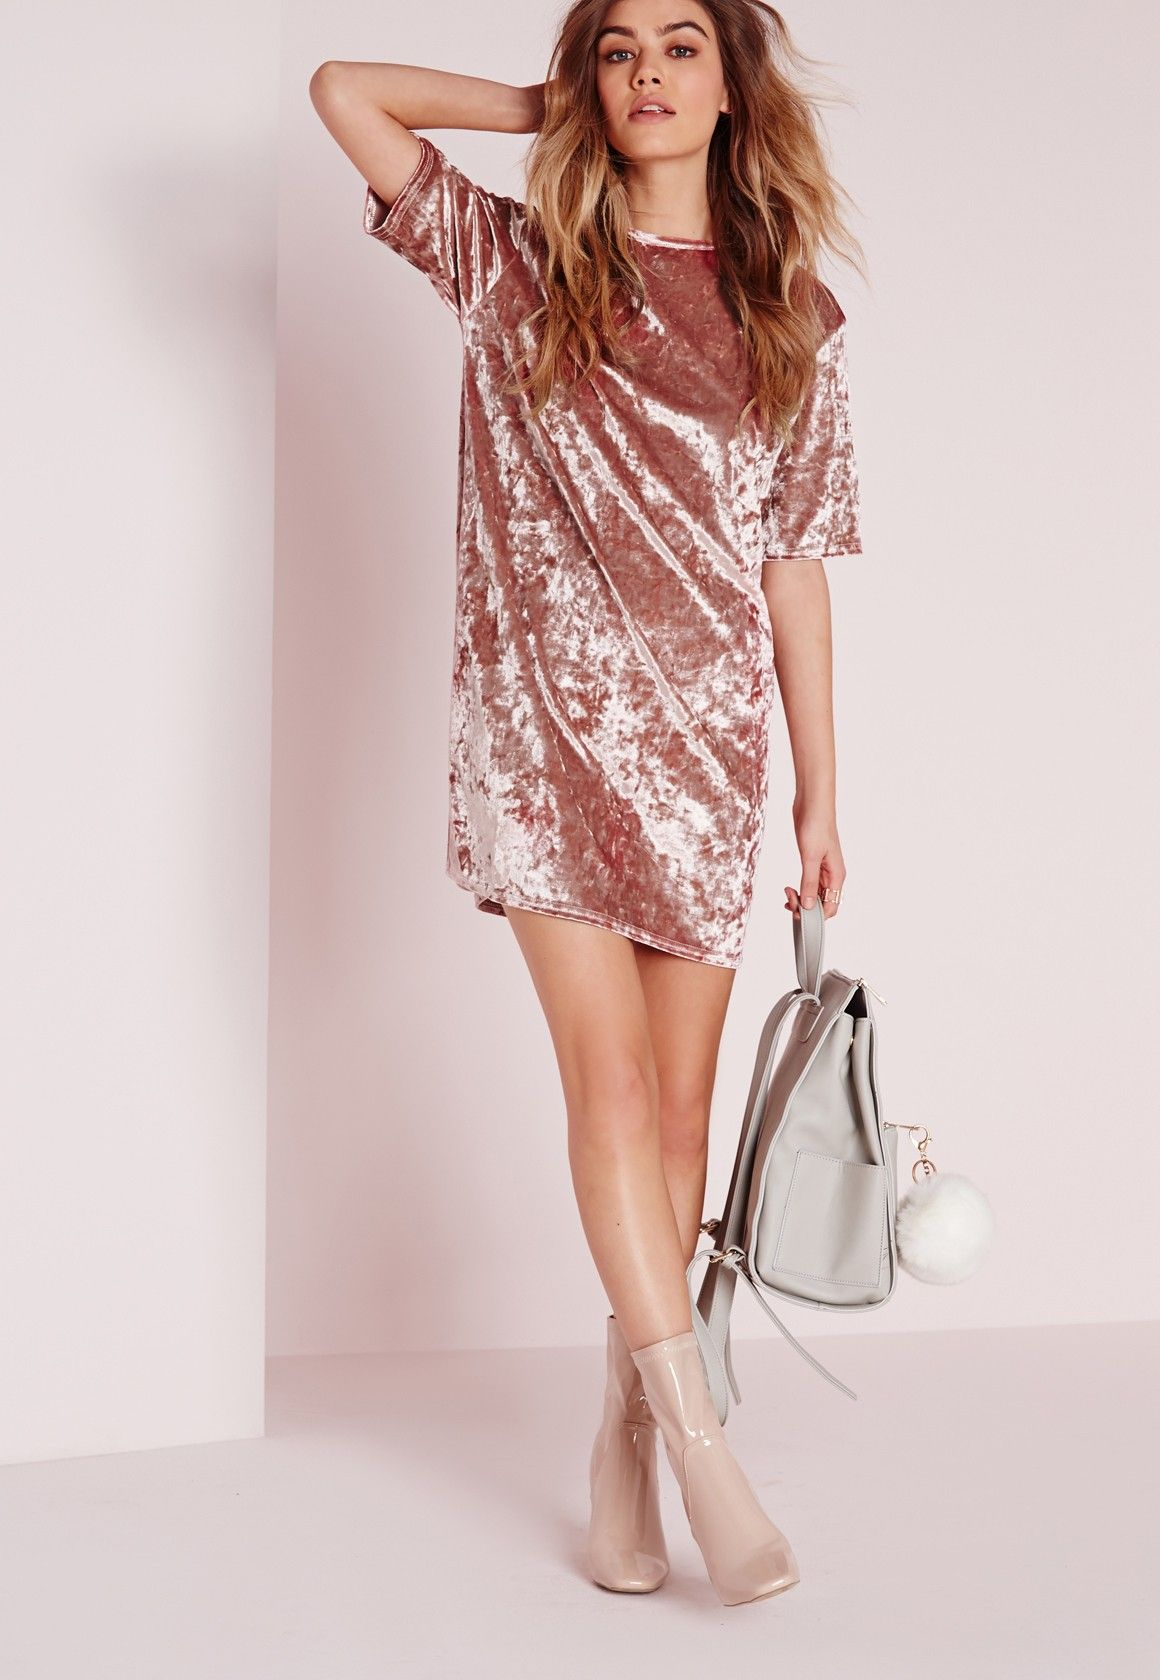 d13b2db4cb01 ... on this crushed velvet dress here at Missguided HQ right now